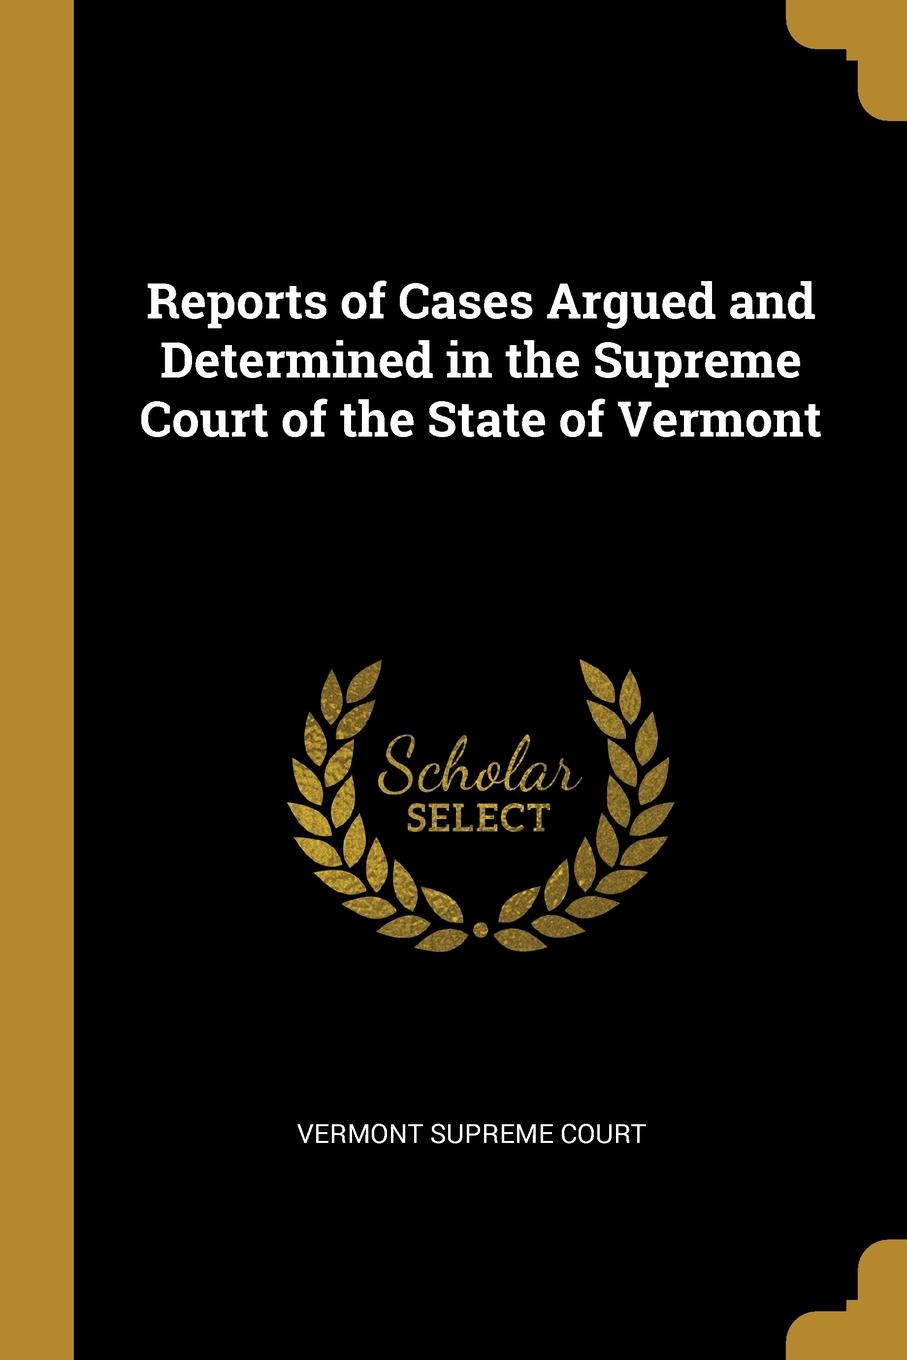 Vermont Supreme Court Reports of Cases Argued and Determined in the Supreme Court of the State of Vermont